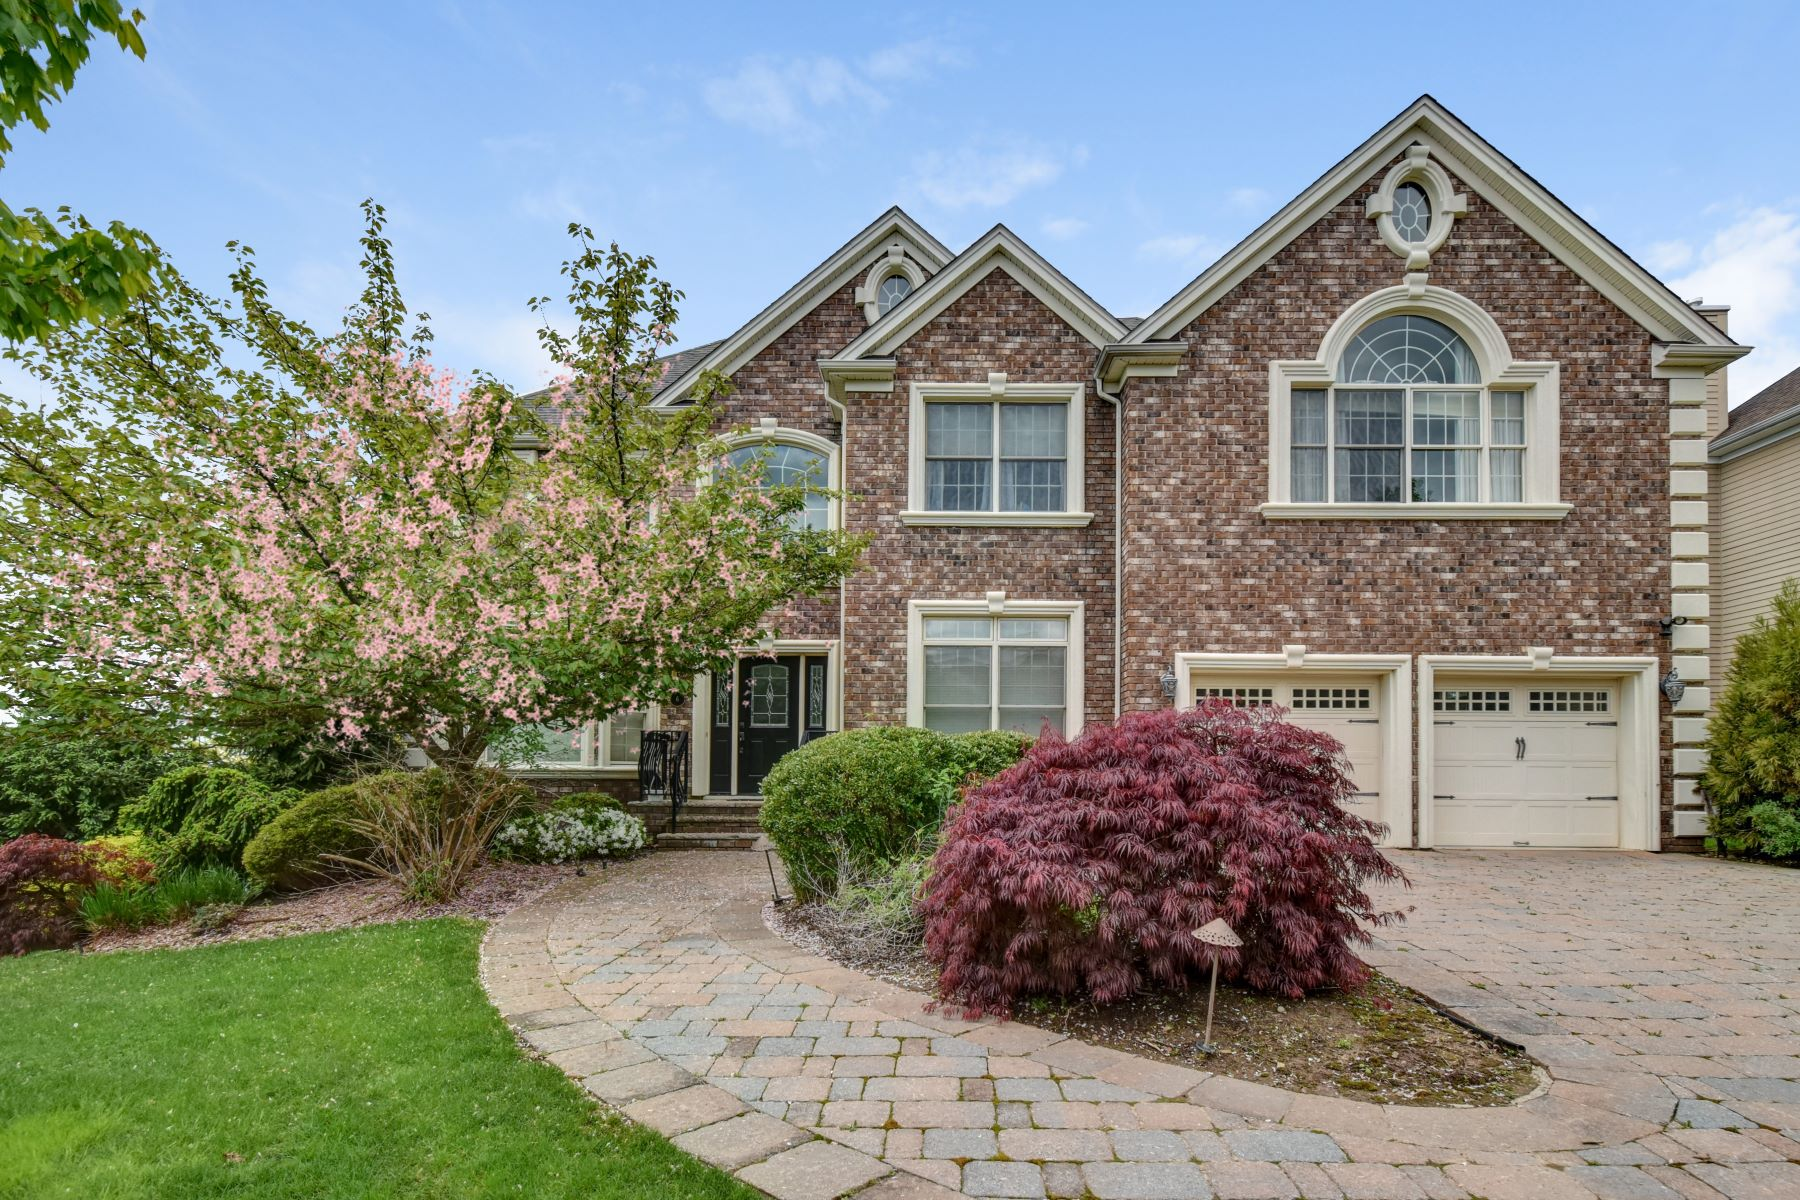 Single Family Homes for Sale at Hillside Heights Custom Colonial 6 Marisa Court Livingston, New Jersey 07039 United States